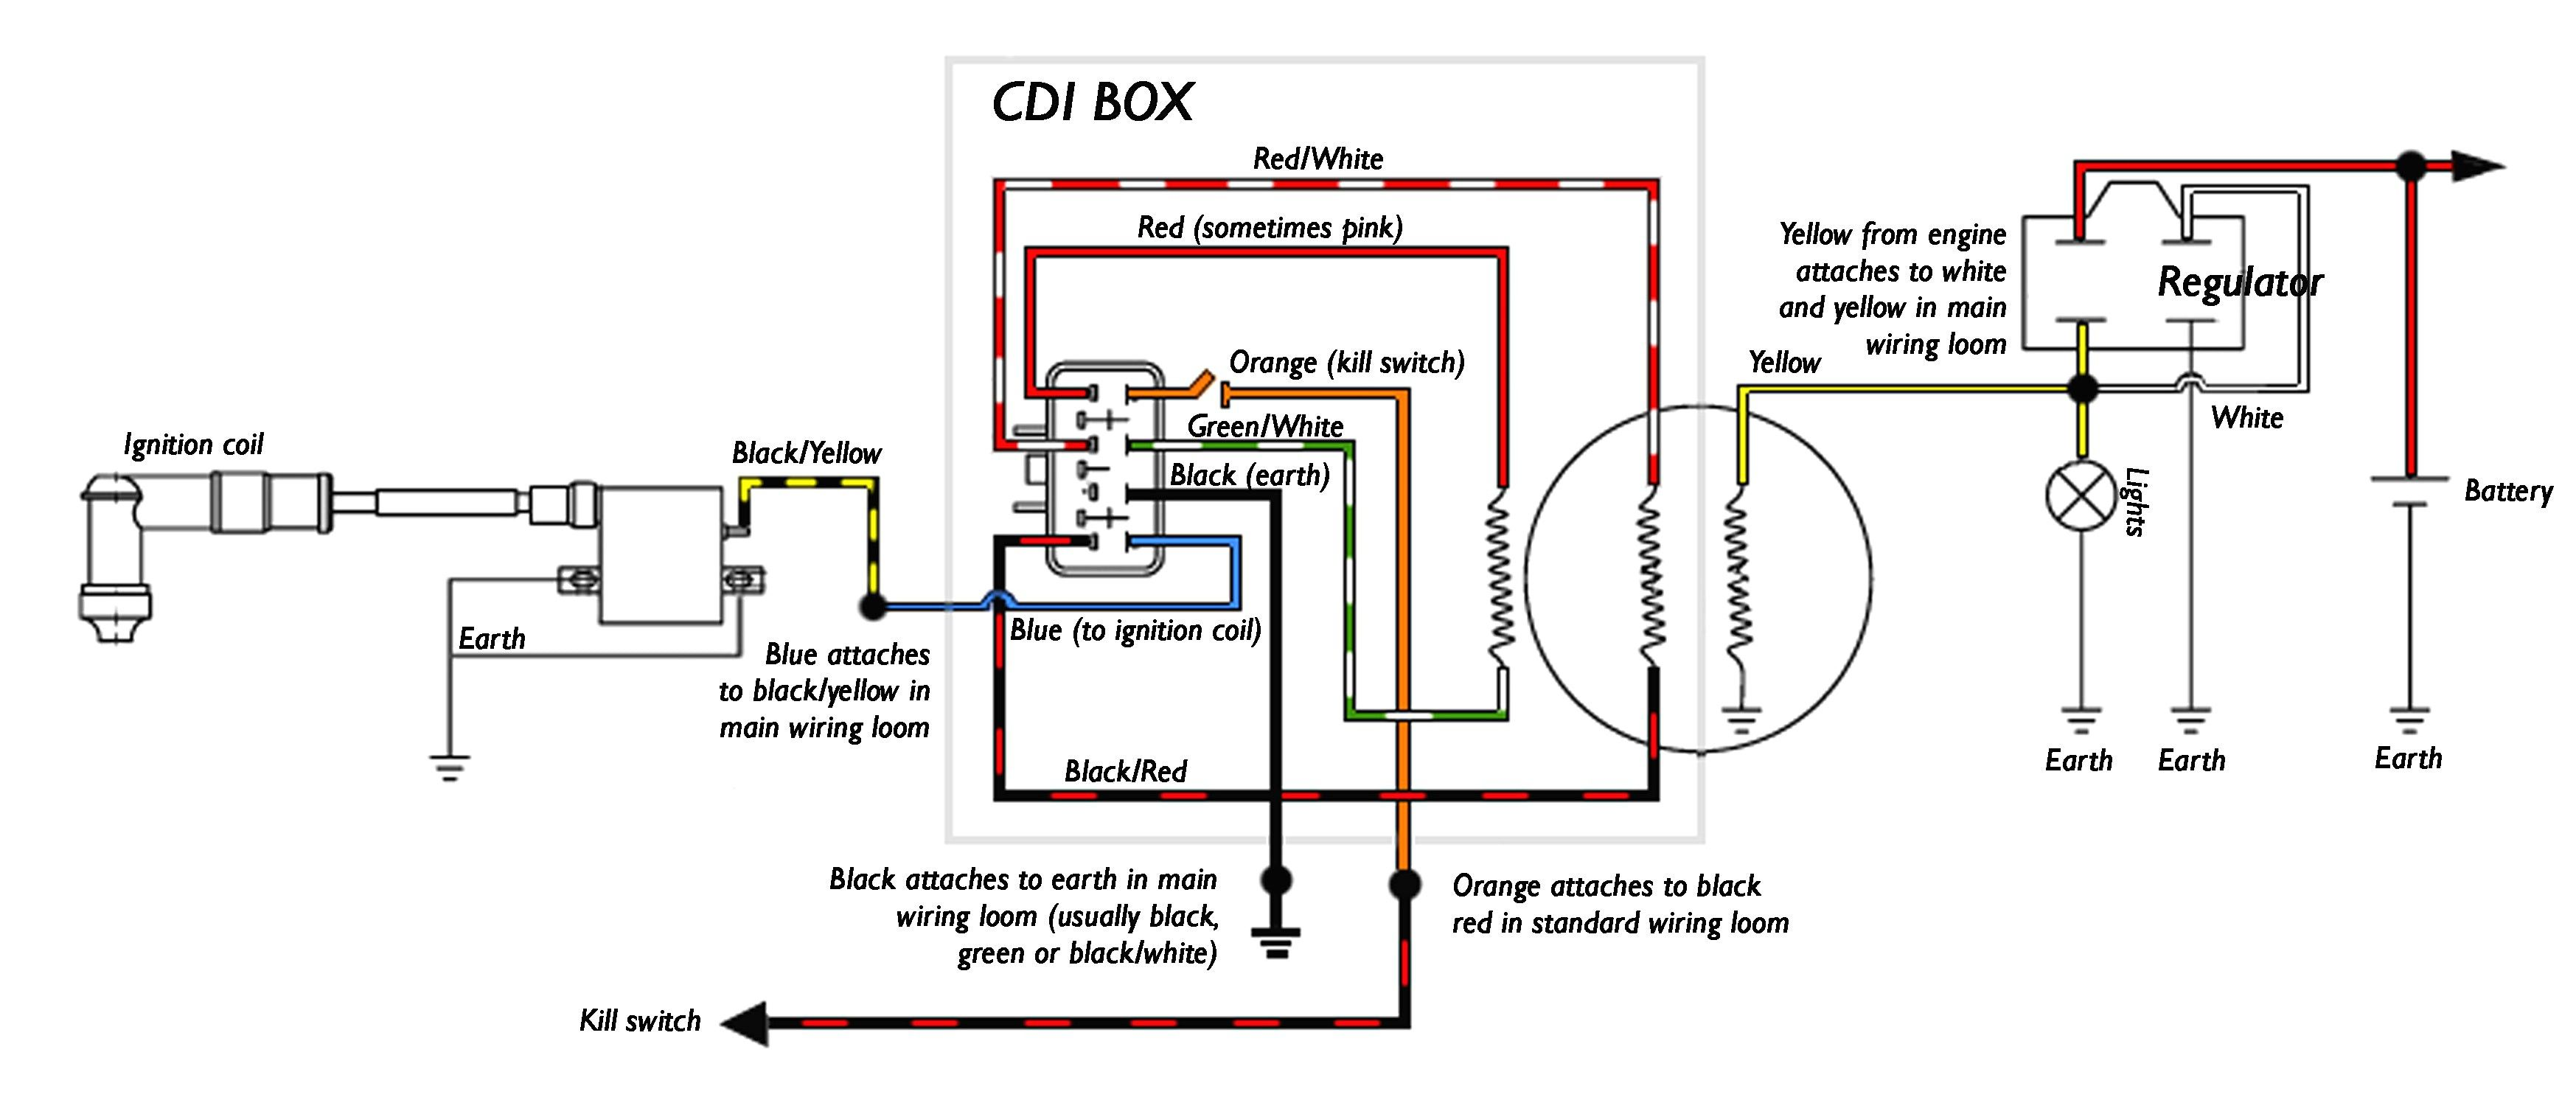 6 Pin Dc Cdi Box Wiring Diagram